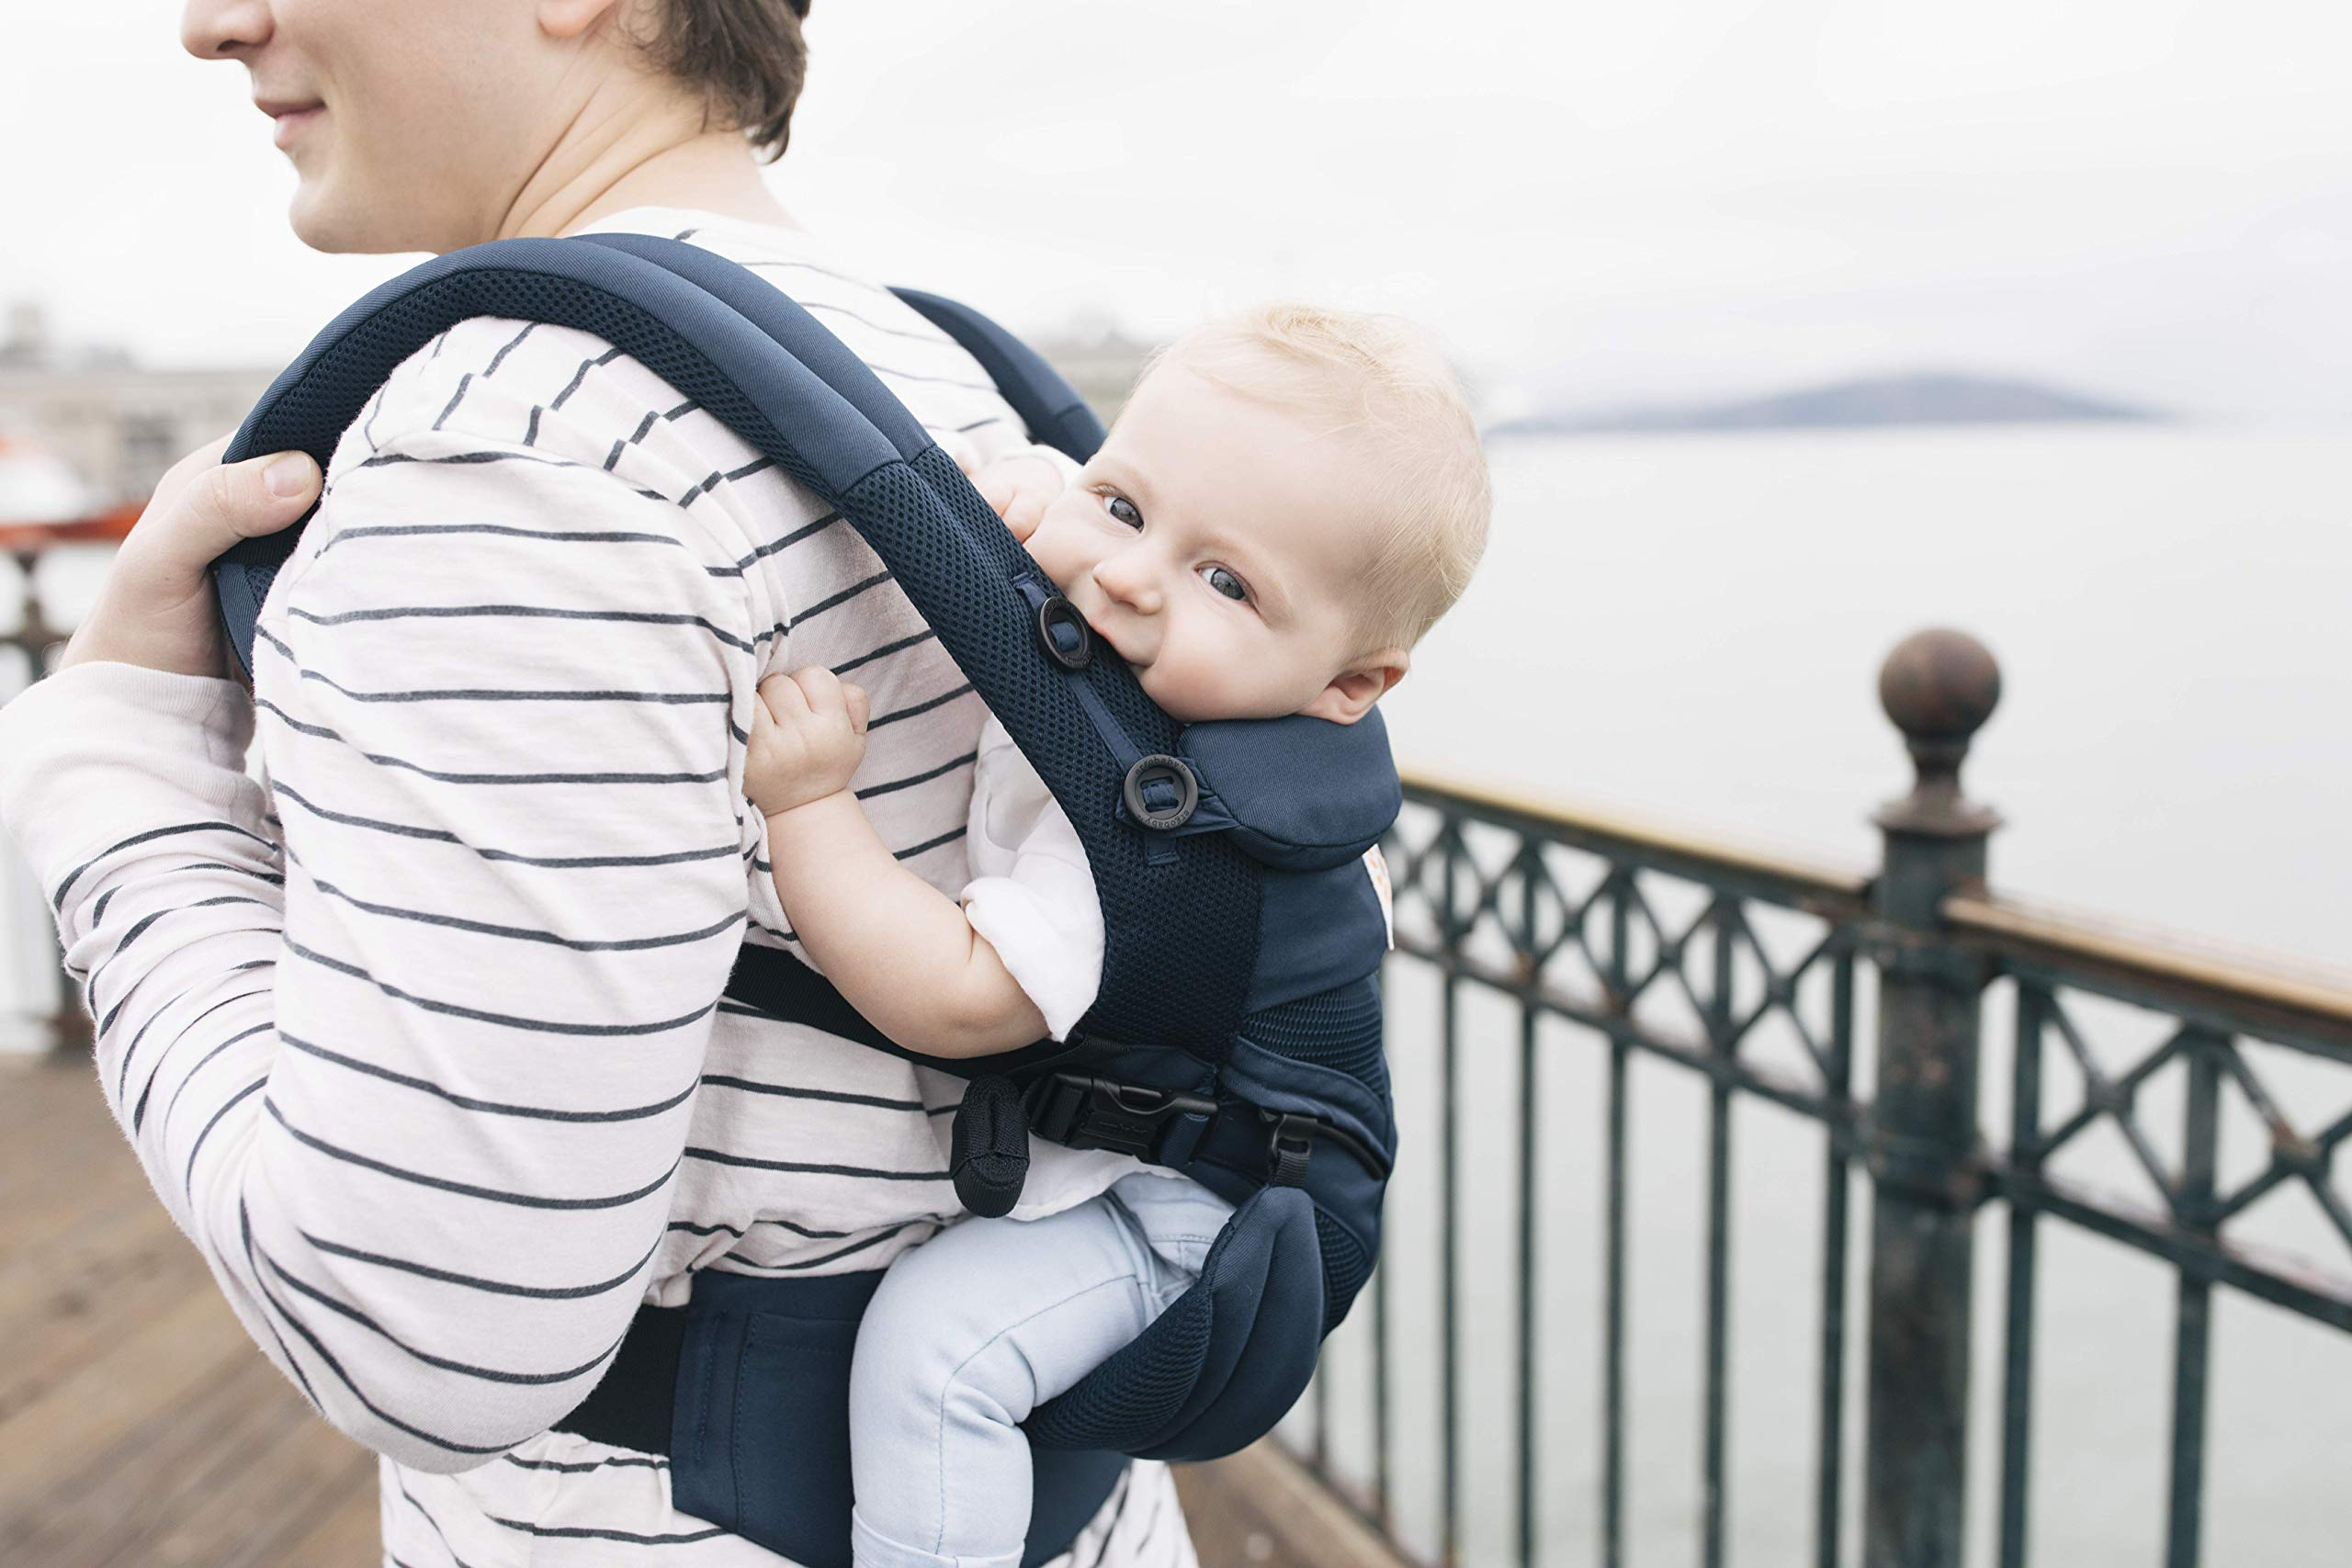 Ergobaby Baby Carrier for Newborn to Toddler, Ergonomic 4-Position Omni 360 Cool Air Midnight Blue, Baby Carrier Front Back Front Facing, Backpack Ergobaby Baby carrier with 4 ergonomic wearing positions: parent facing, on the back, on the hip and on the front facing outwards. four ergonomic carry positions and easy to use. Adapts to baby's growth: infant baby carrier new-born to toddler (7-33 lbs./ 3.2 to 20 kg), no infant insert needed Breathable 3d air mesh material ensures the optimal temperature of the baby. includes removable belt pouch. 8